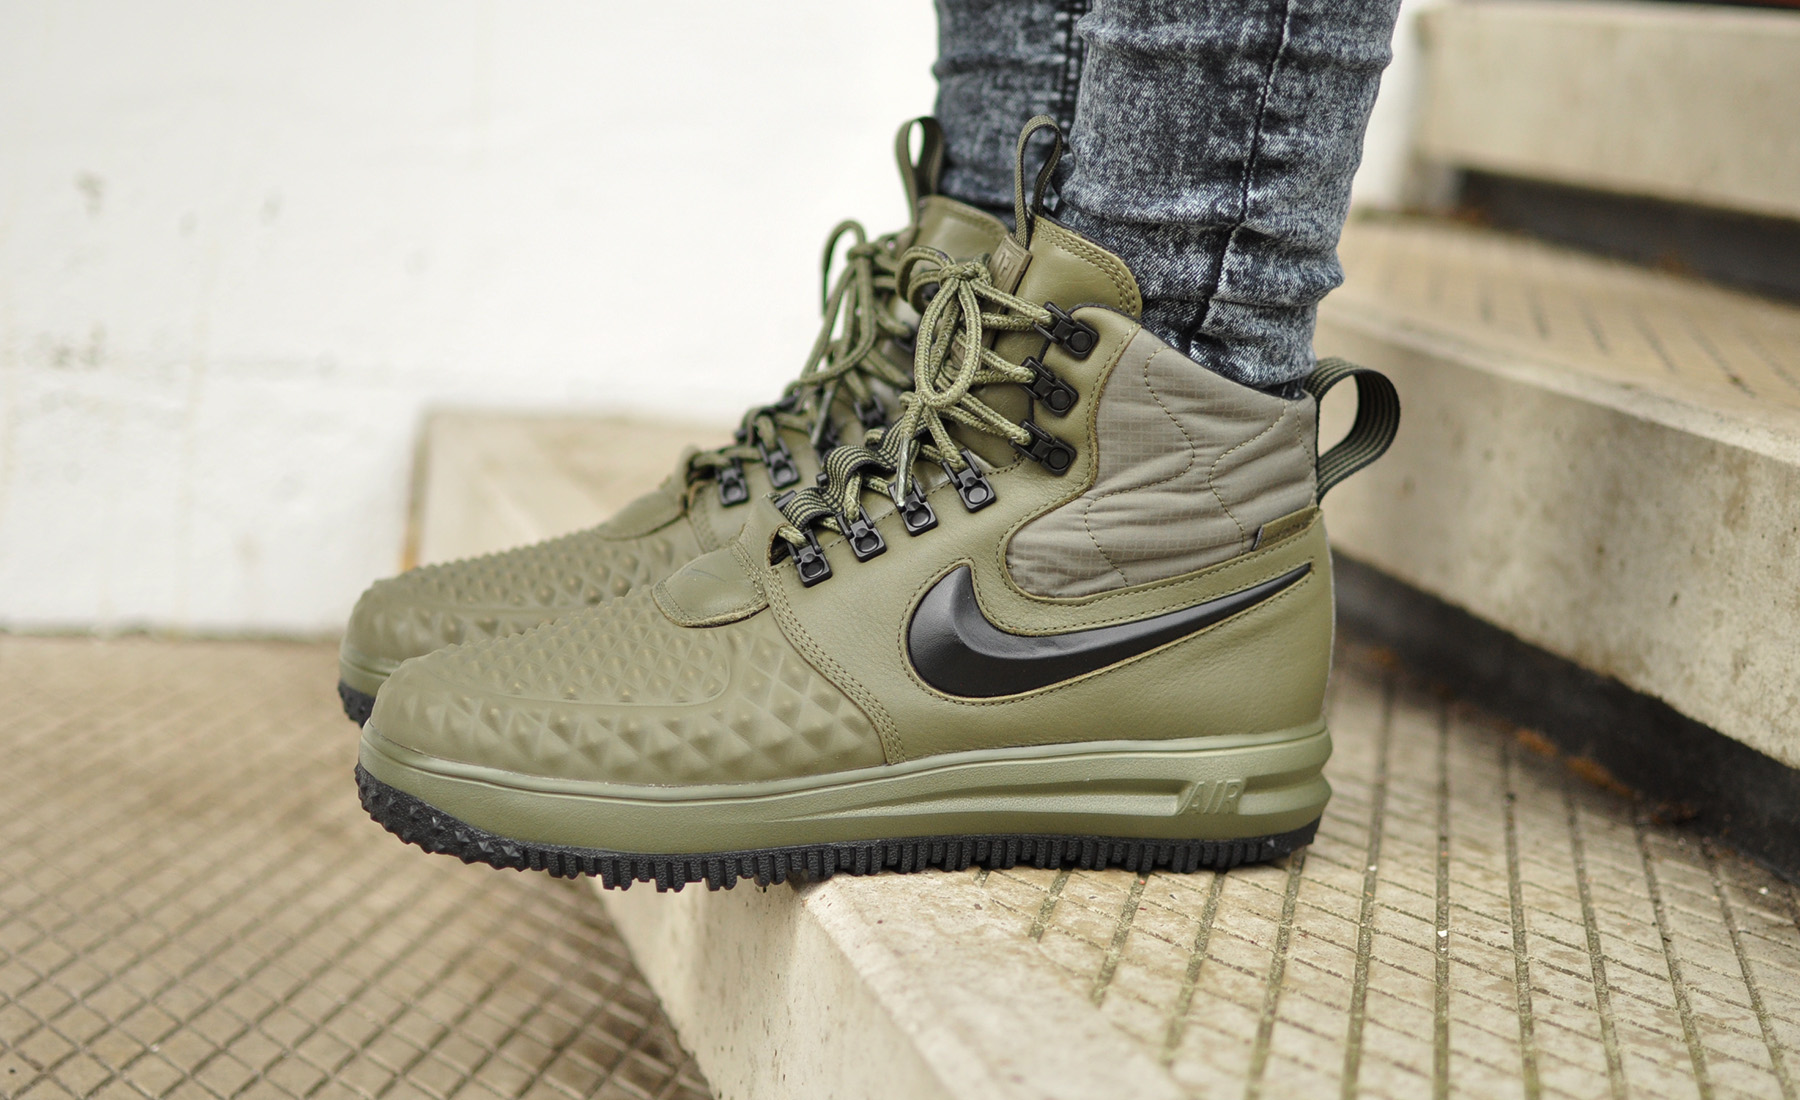 Nike Lunar Force 1 Duckboot '17 916682 202 Sneakers Blog